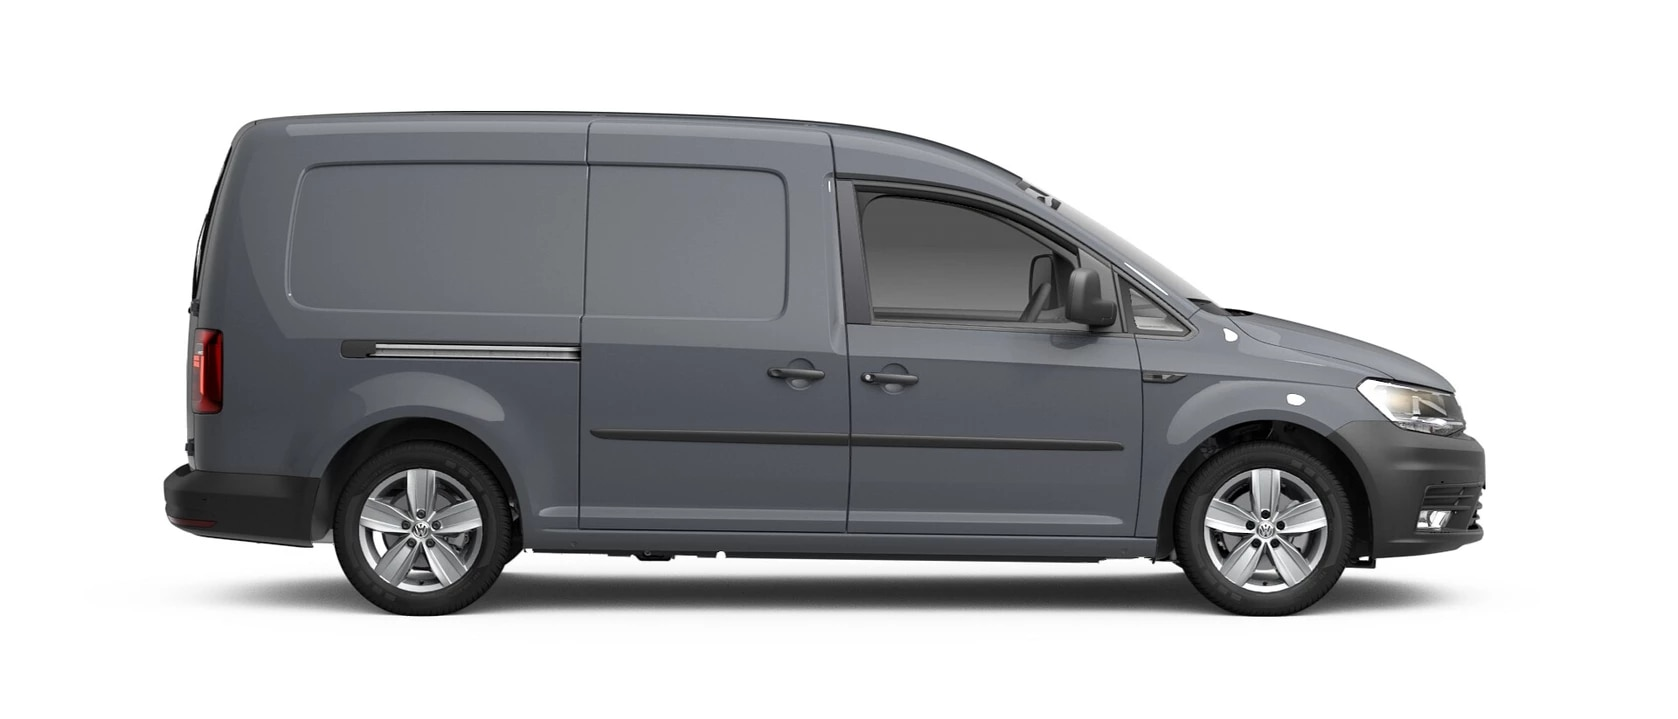 2020 Volkswagen Caddy 2K Urban Edition Van